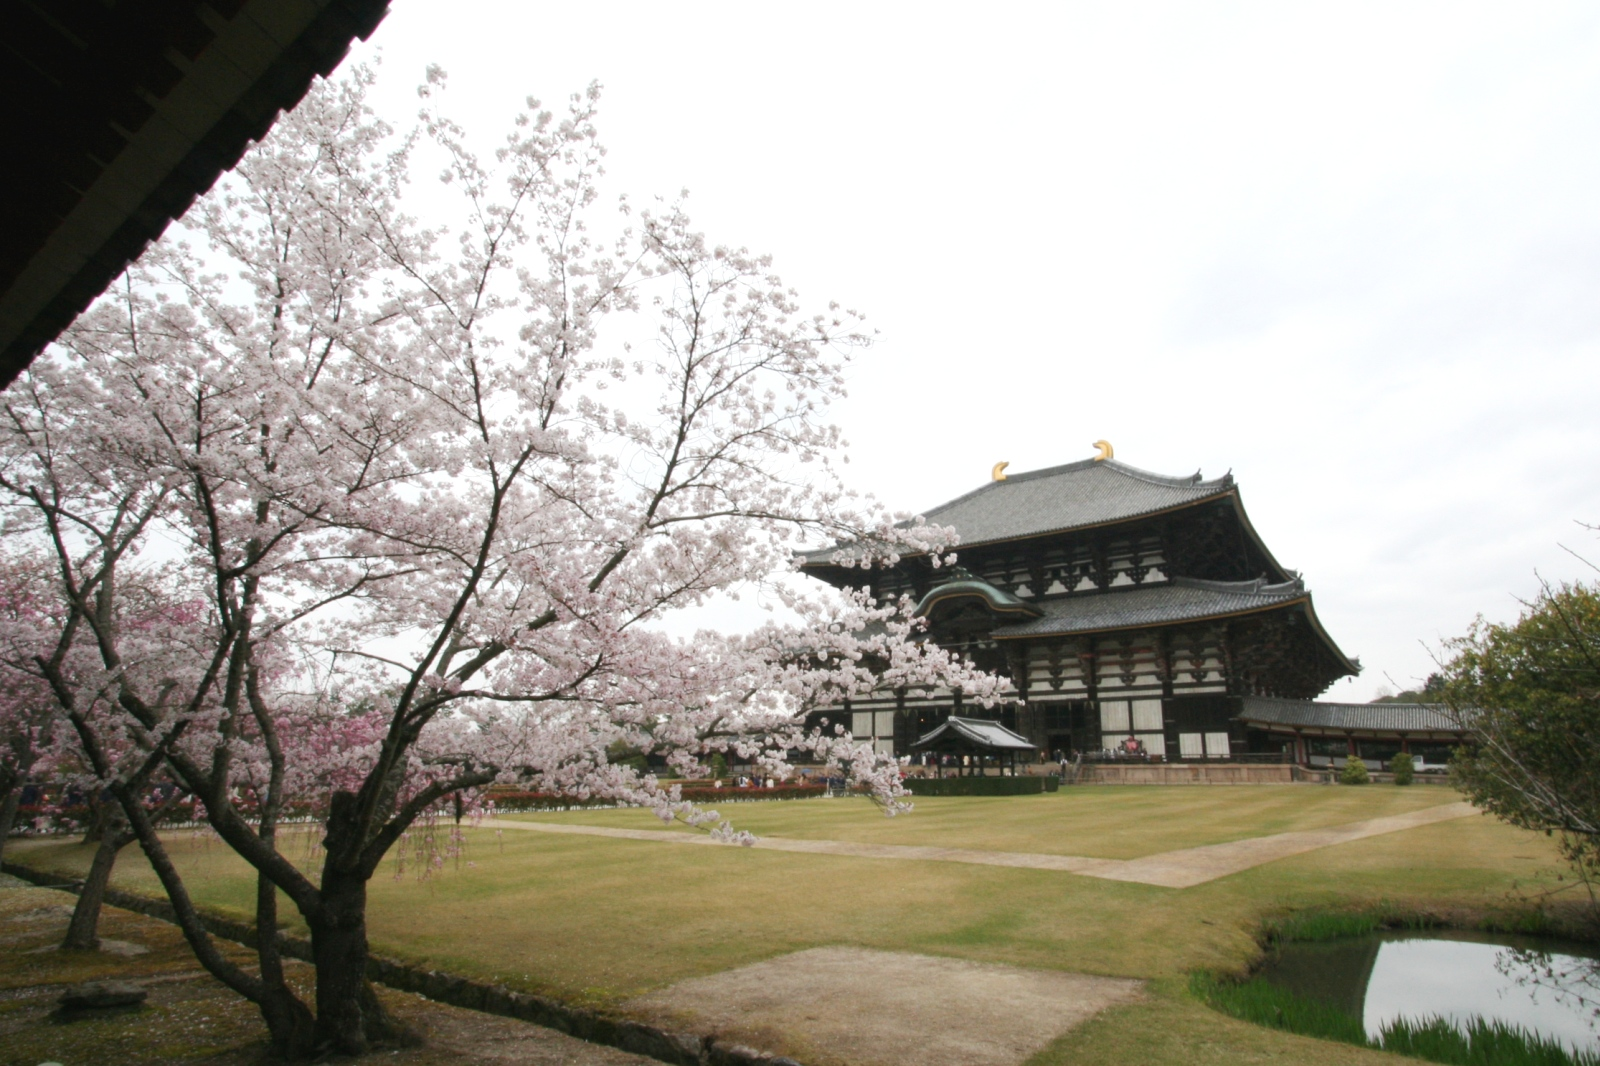 Todaiji and Cherry blossoms